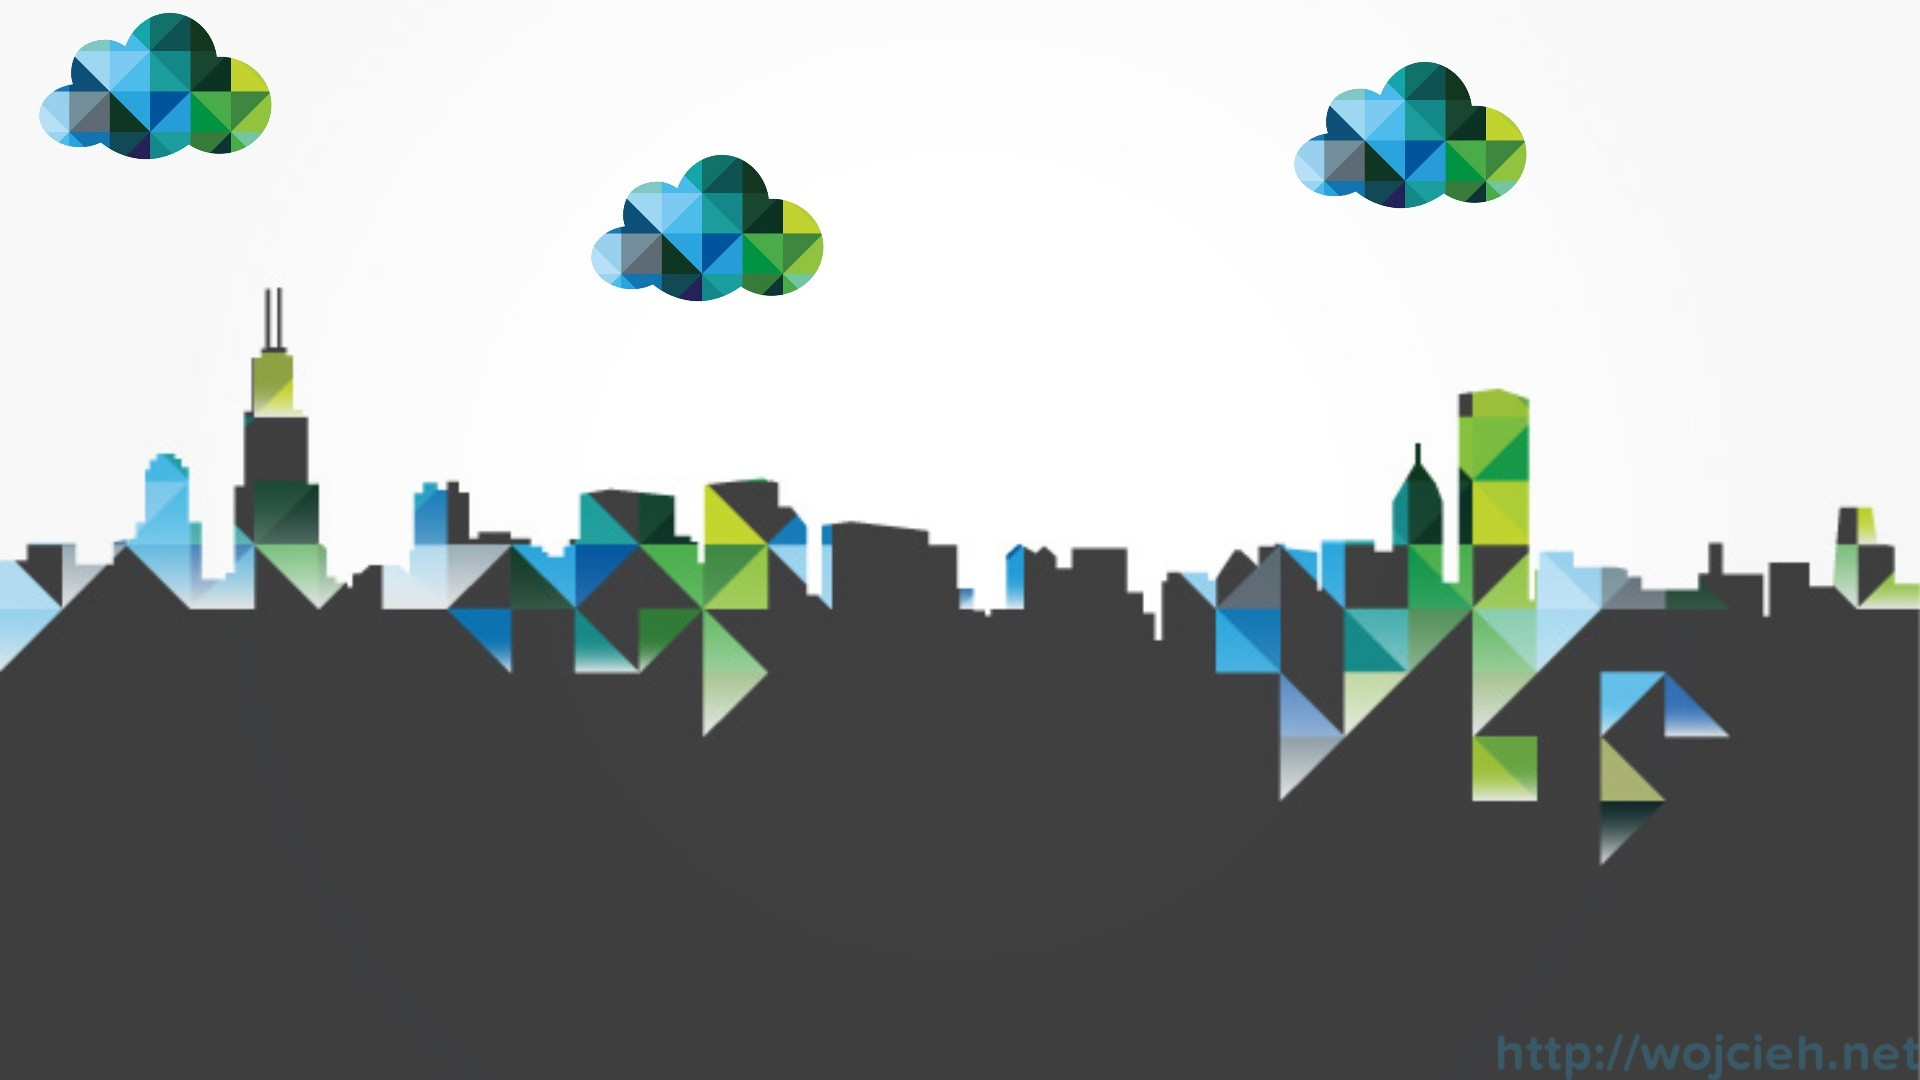 Vmware Wallpaper 3 Clouds